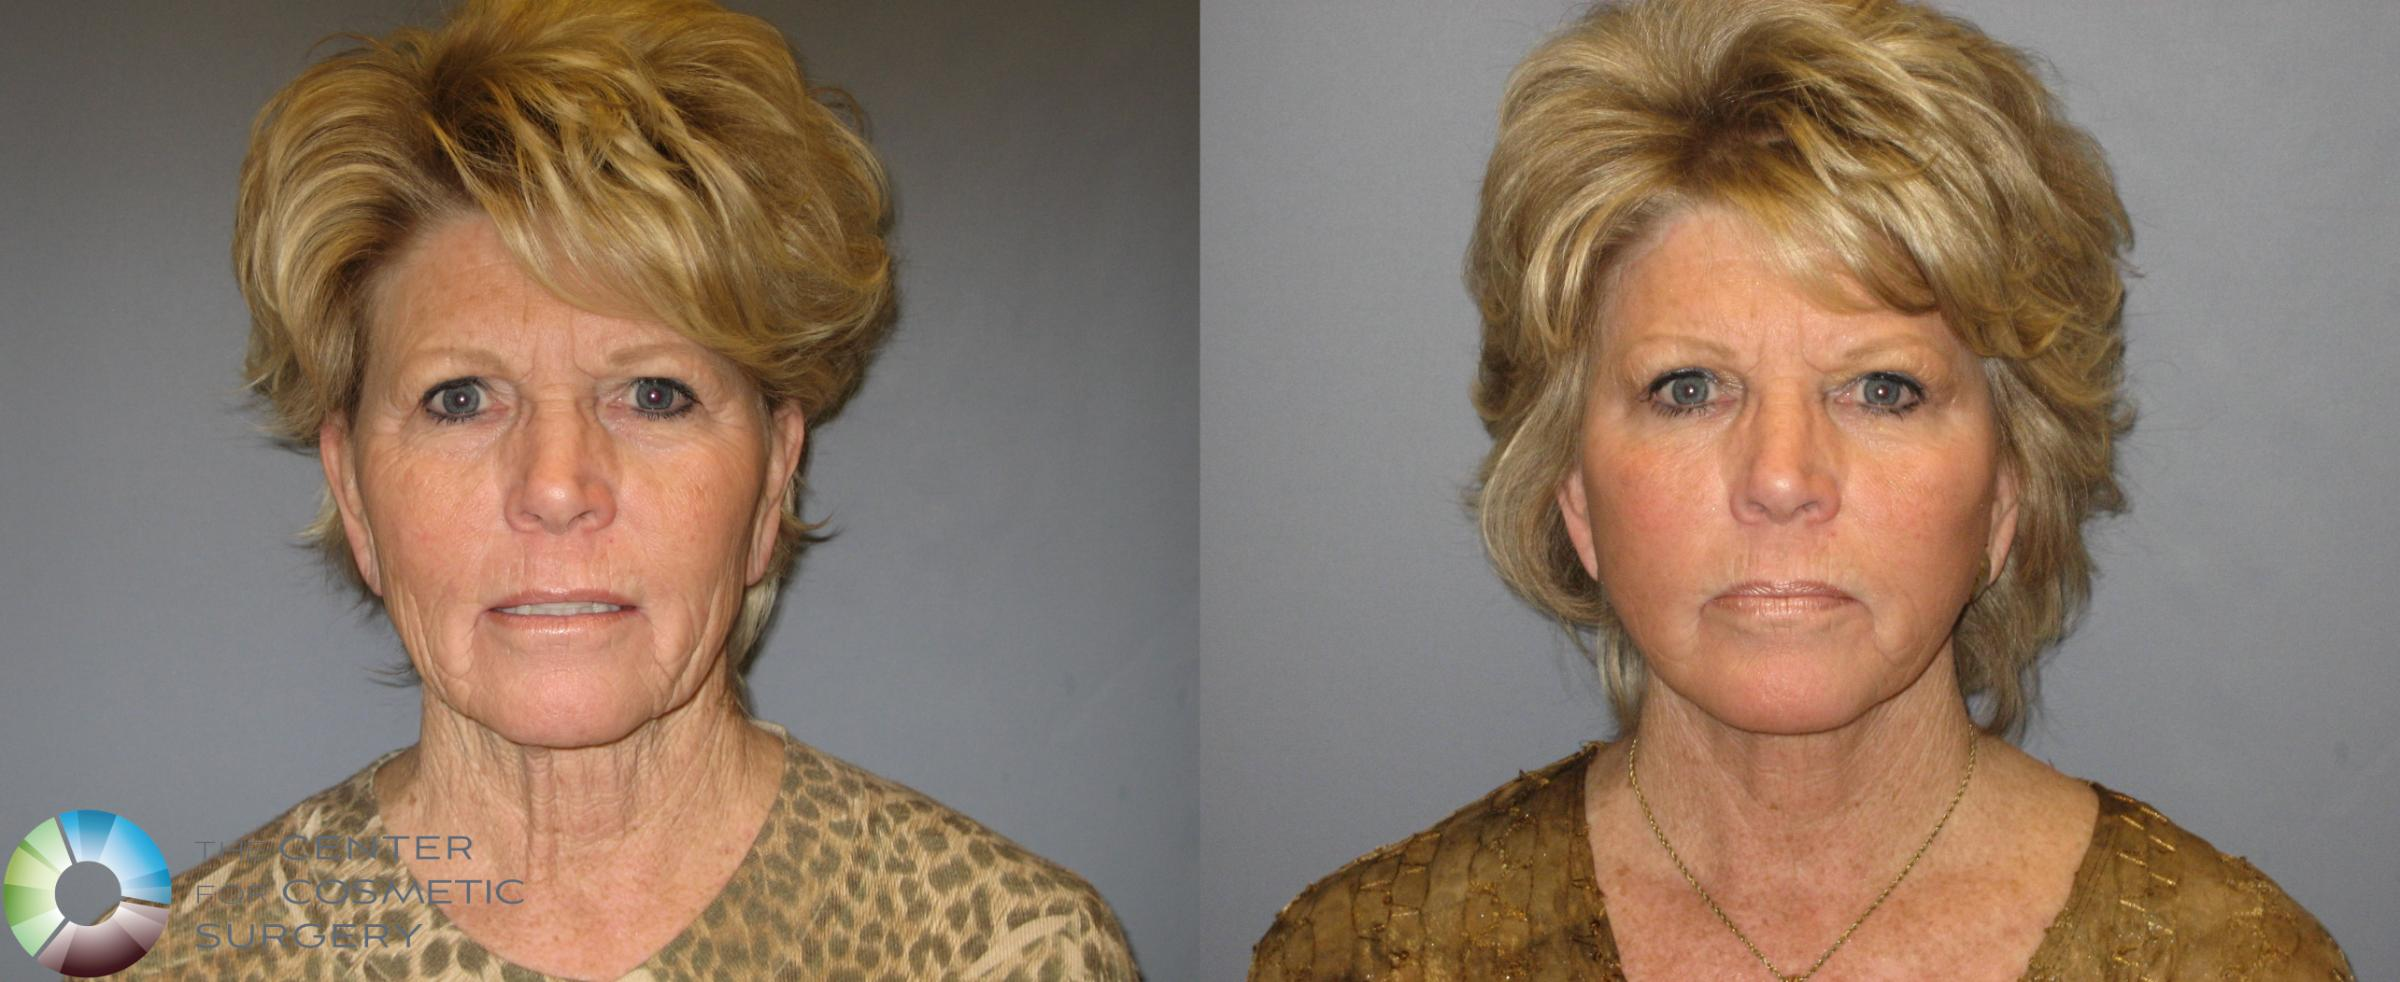 Mini Facelift Case 334 Before & After View #1 | Golden, CO | The Center for Cosmetic Surgery